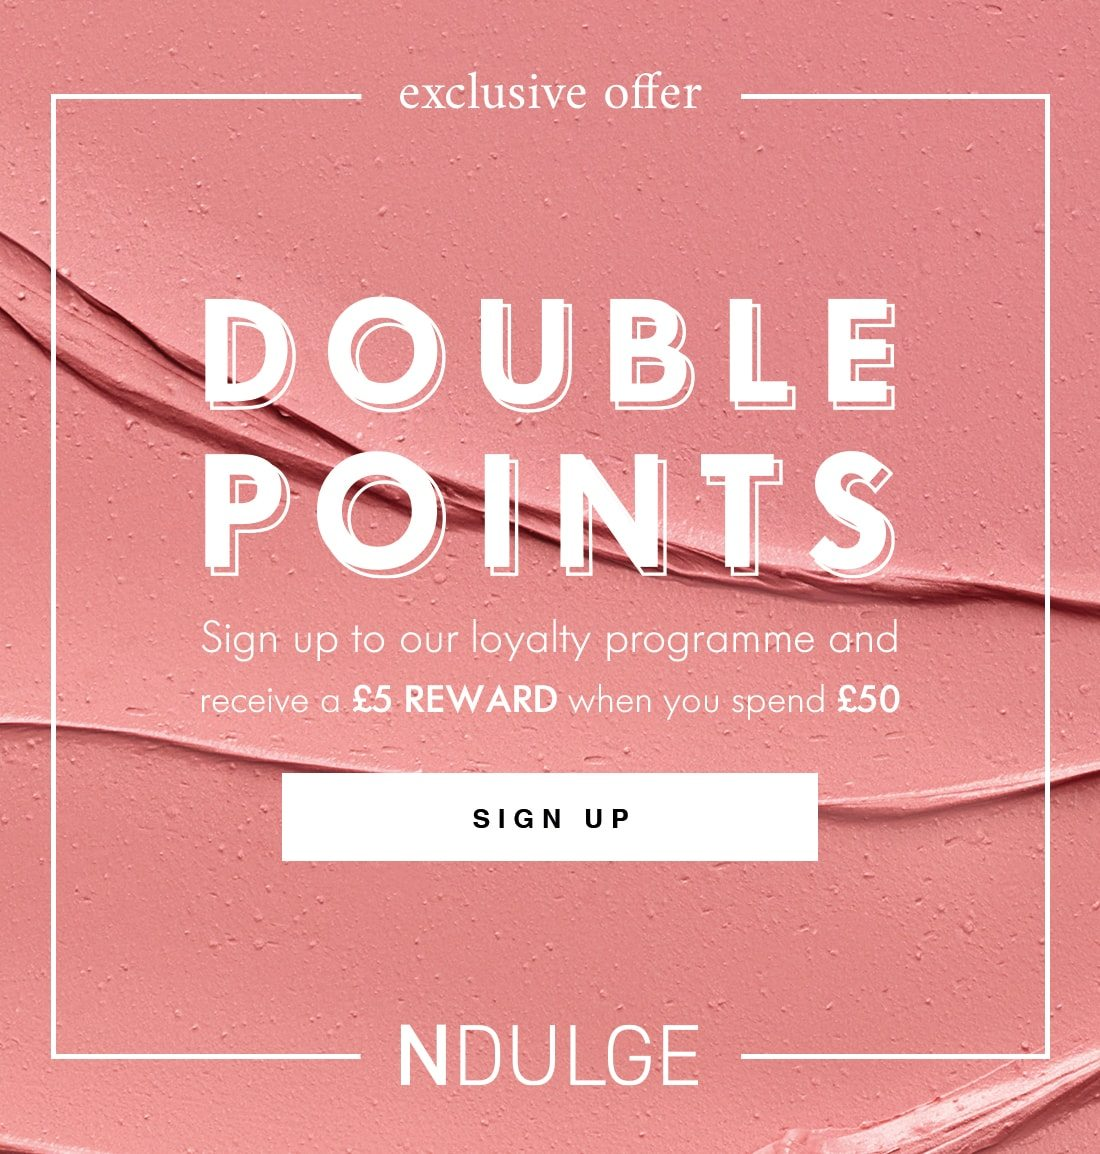 exclusive offer DOUBLE POINTS Sign up to our loyalty programme and receive a £5 REWARD when you spend £50 SIGN UP NDULGE